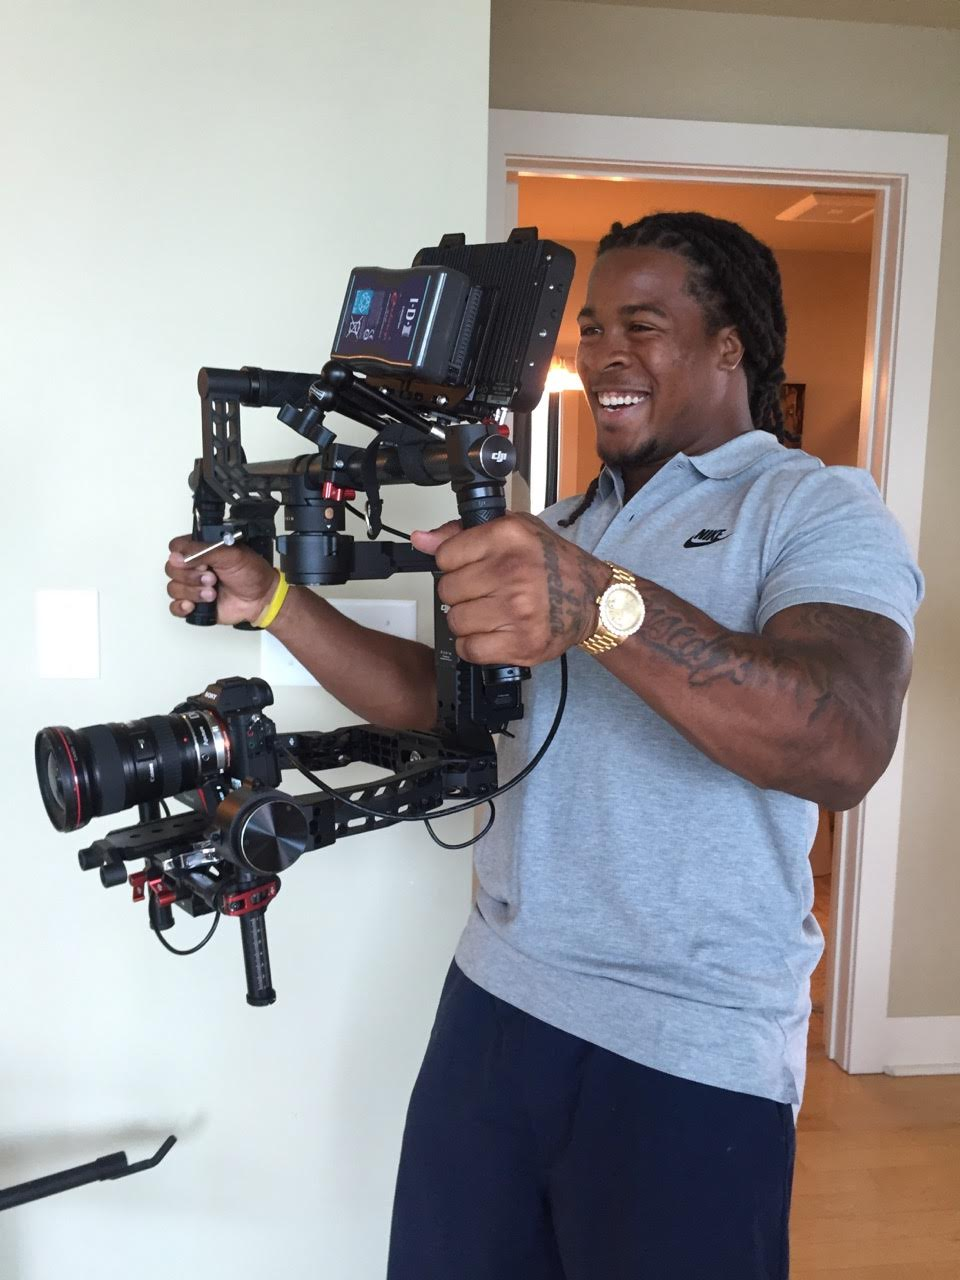 blog picture 7 5 16 Nashville Crew House Hunts with Devonta Freeman and The Bleacher Report